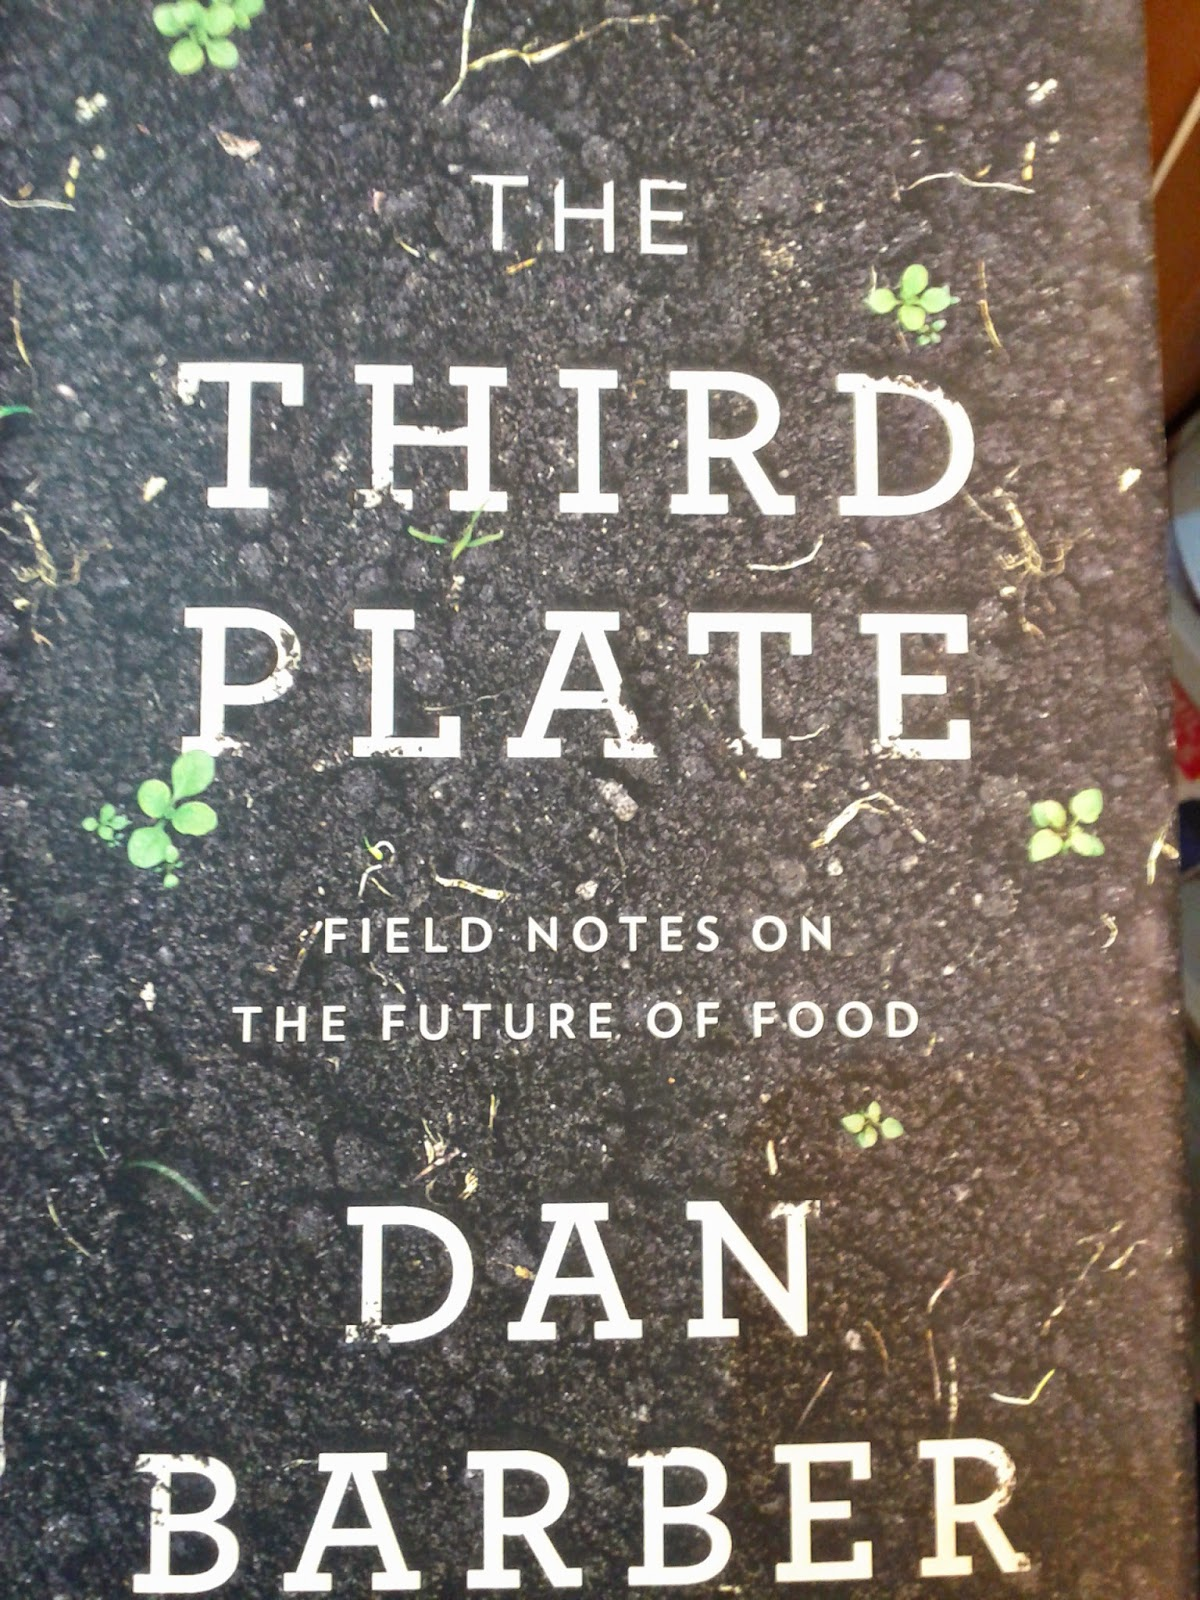 The Third Place, Field Notes on the Future of Food, Dan Barber